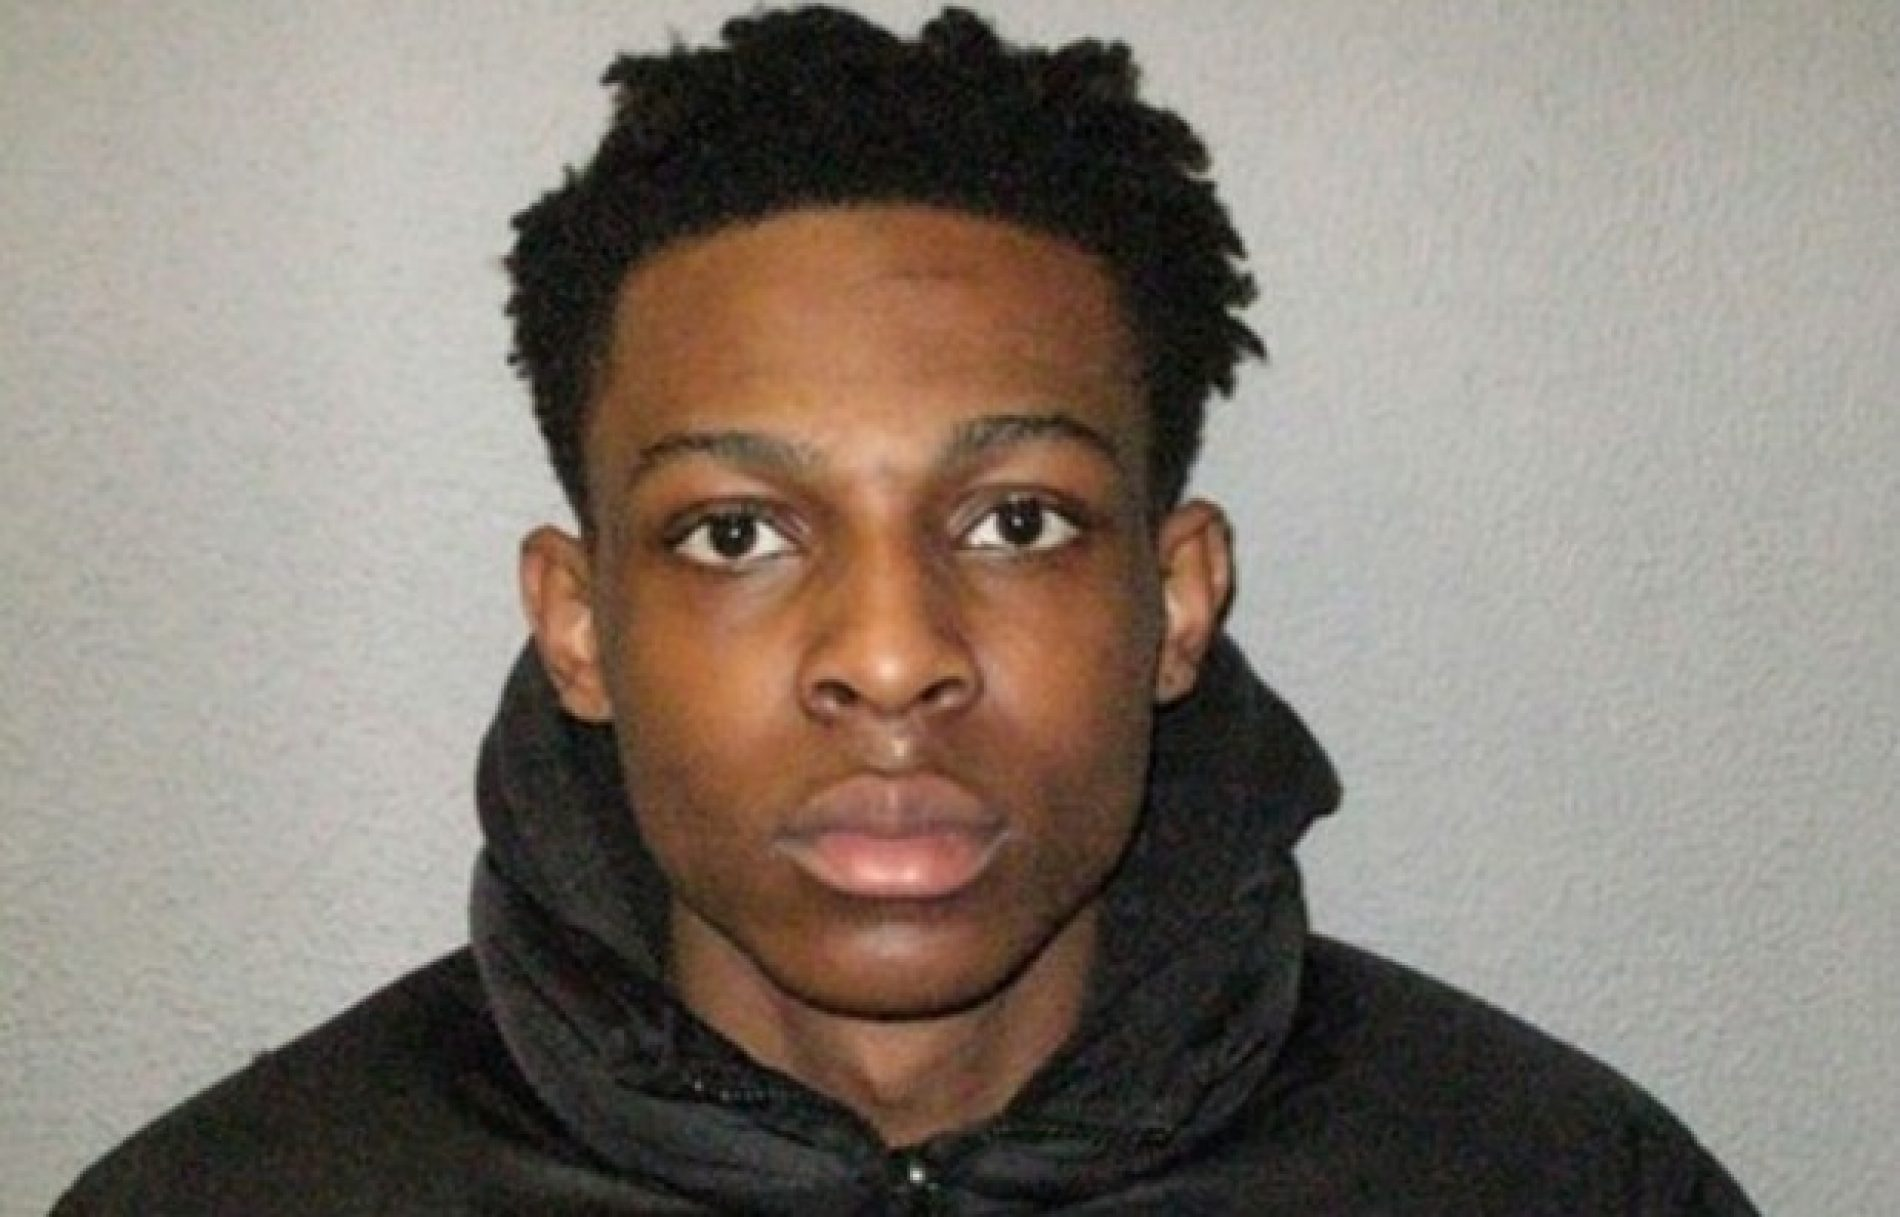 Man gets 21-year jail sentence for killing friend after quarrel over who's straighter